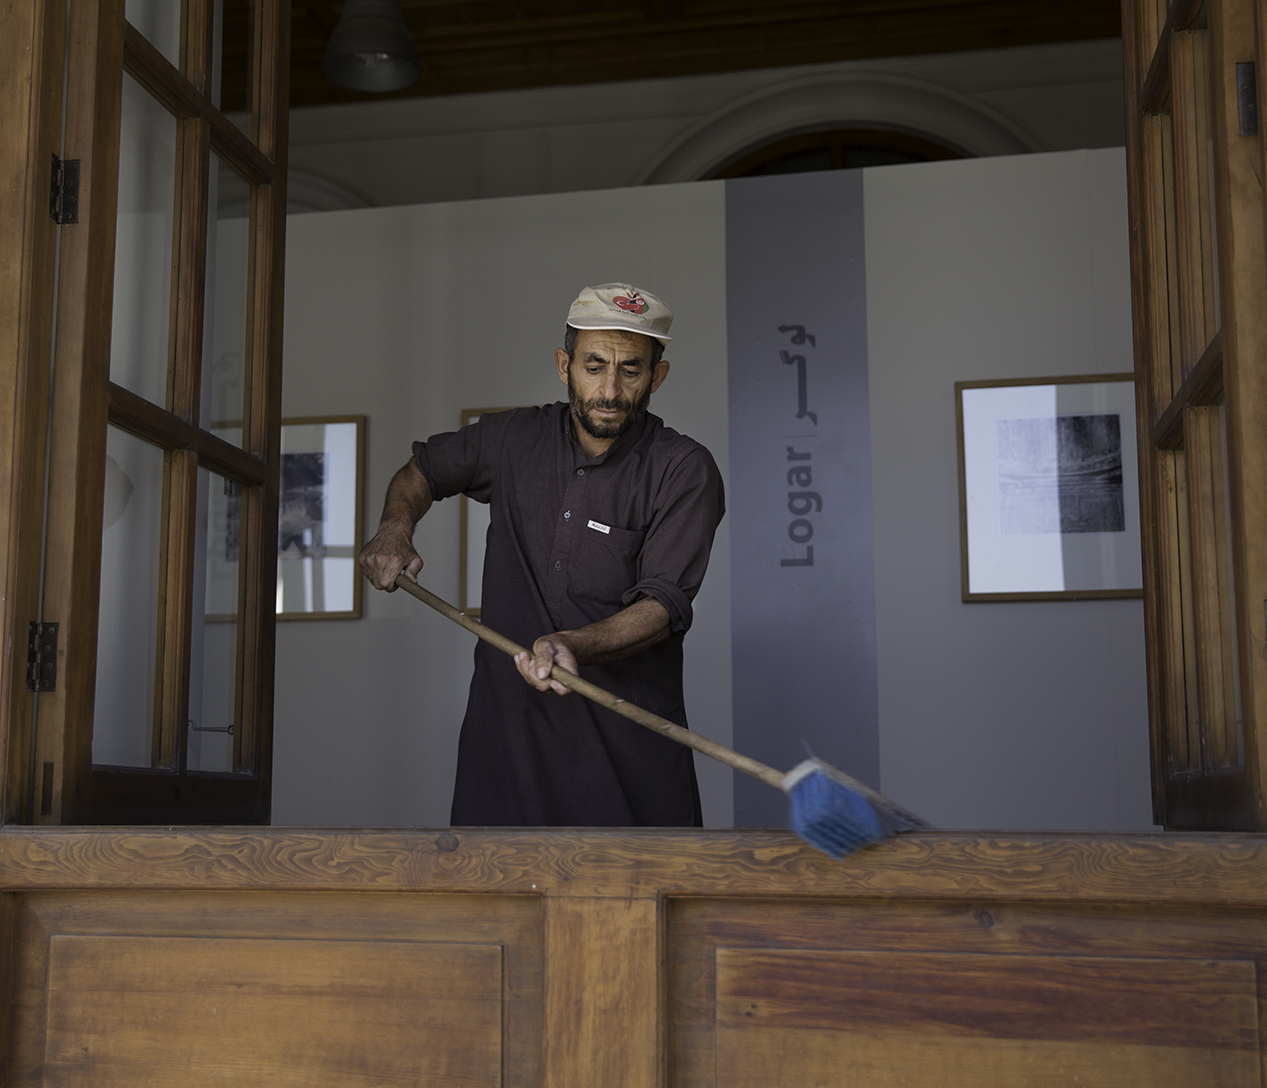 An employee sweeps the window ledge inside a gallery and exhibition hall in Bagh-e Babur's main pavilion. The gallery pictures were taken by Josephine Powell in the 1960's of Afghanistan's historic monuments.